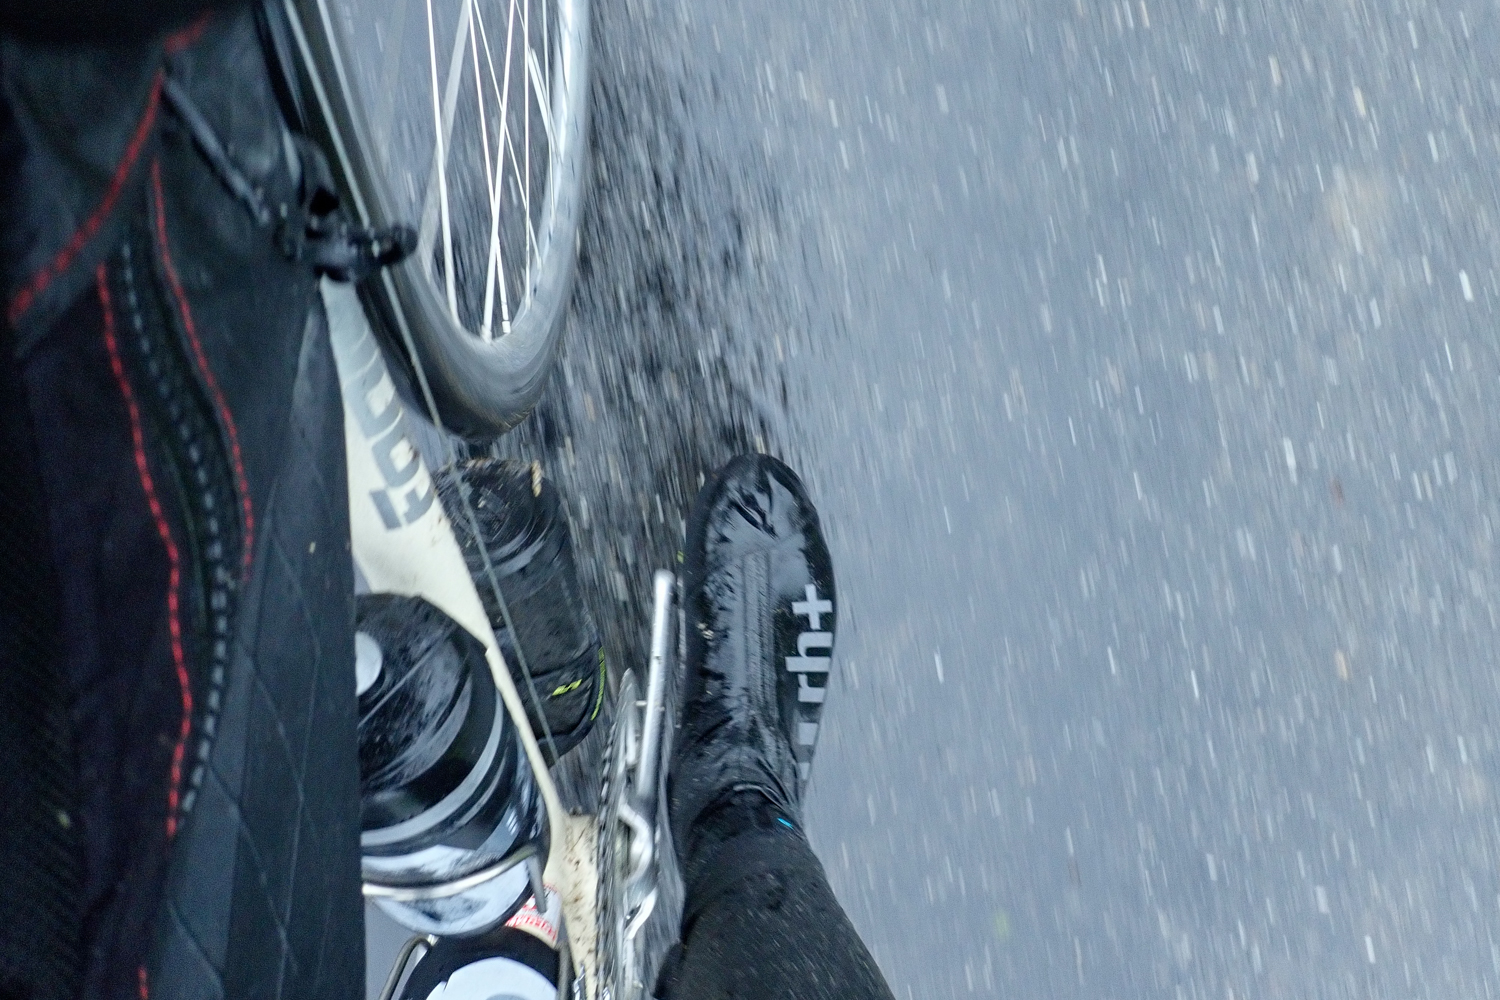 RH+ Shark Shoe cover cycling apparel